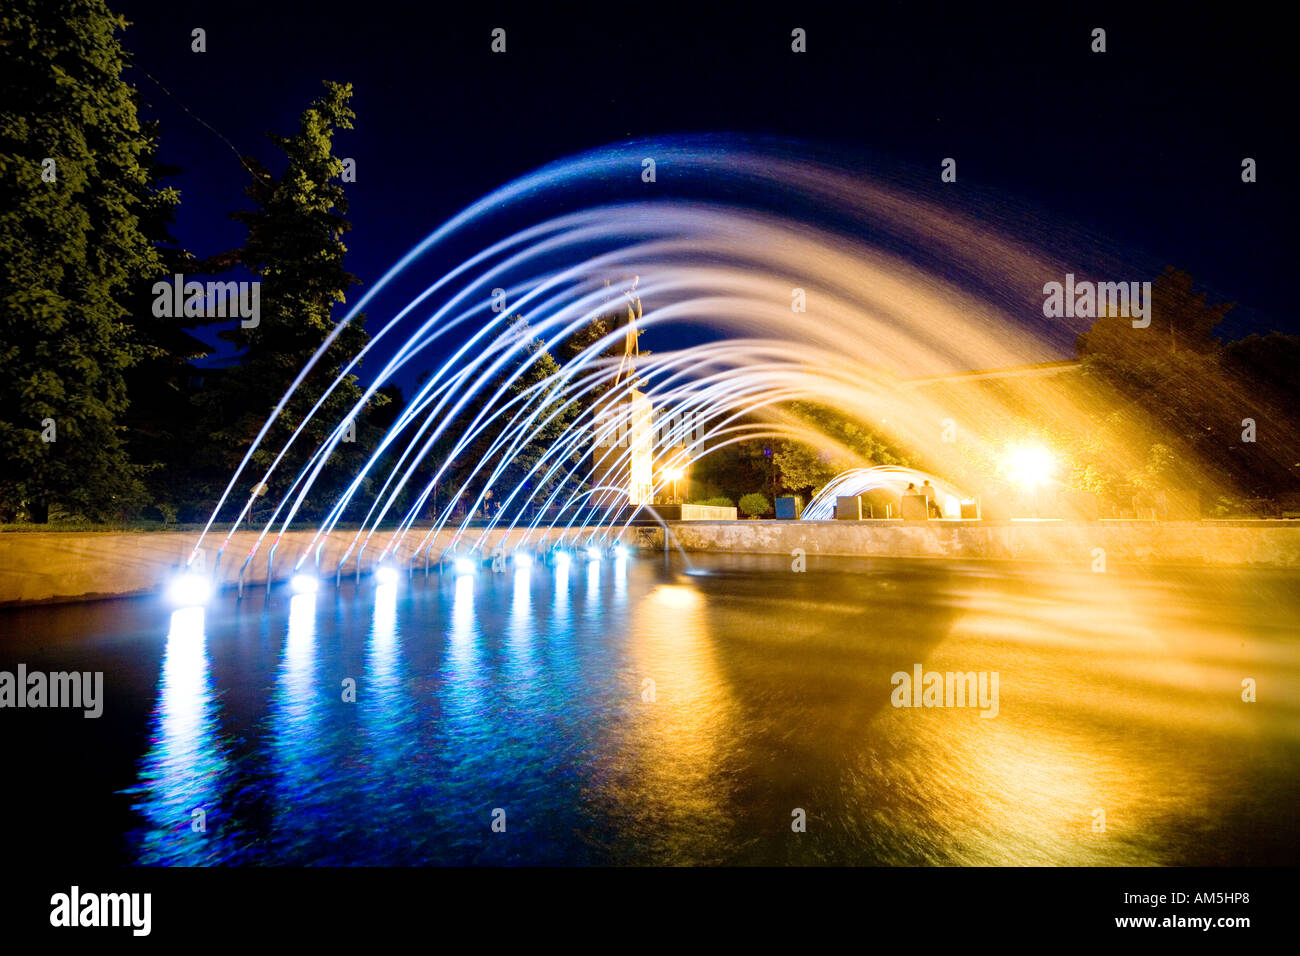 Colorful illuminated fountain of the monument to Chokan Valikhanov in central Almaty, Kazakhstan by night. - Stock Image